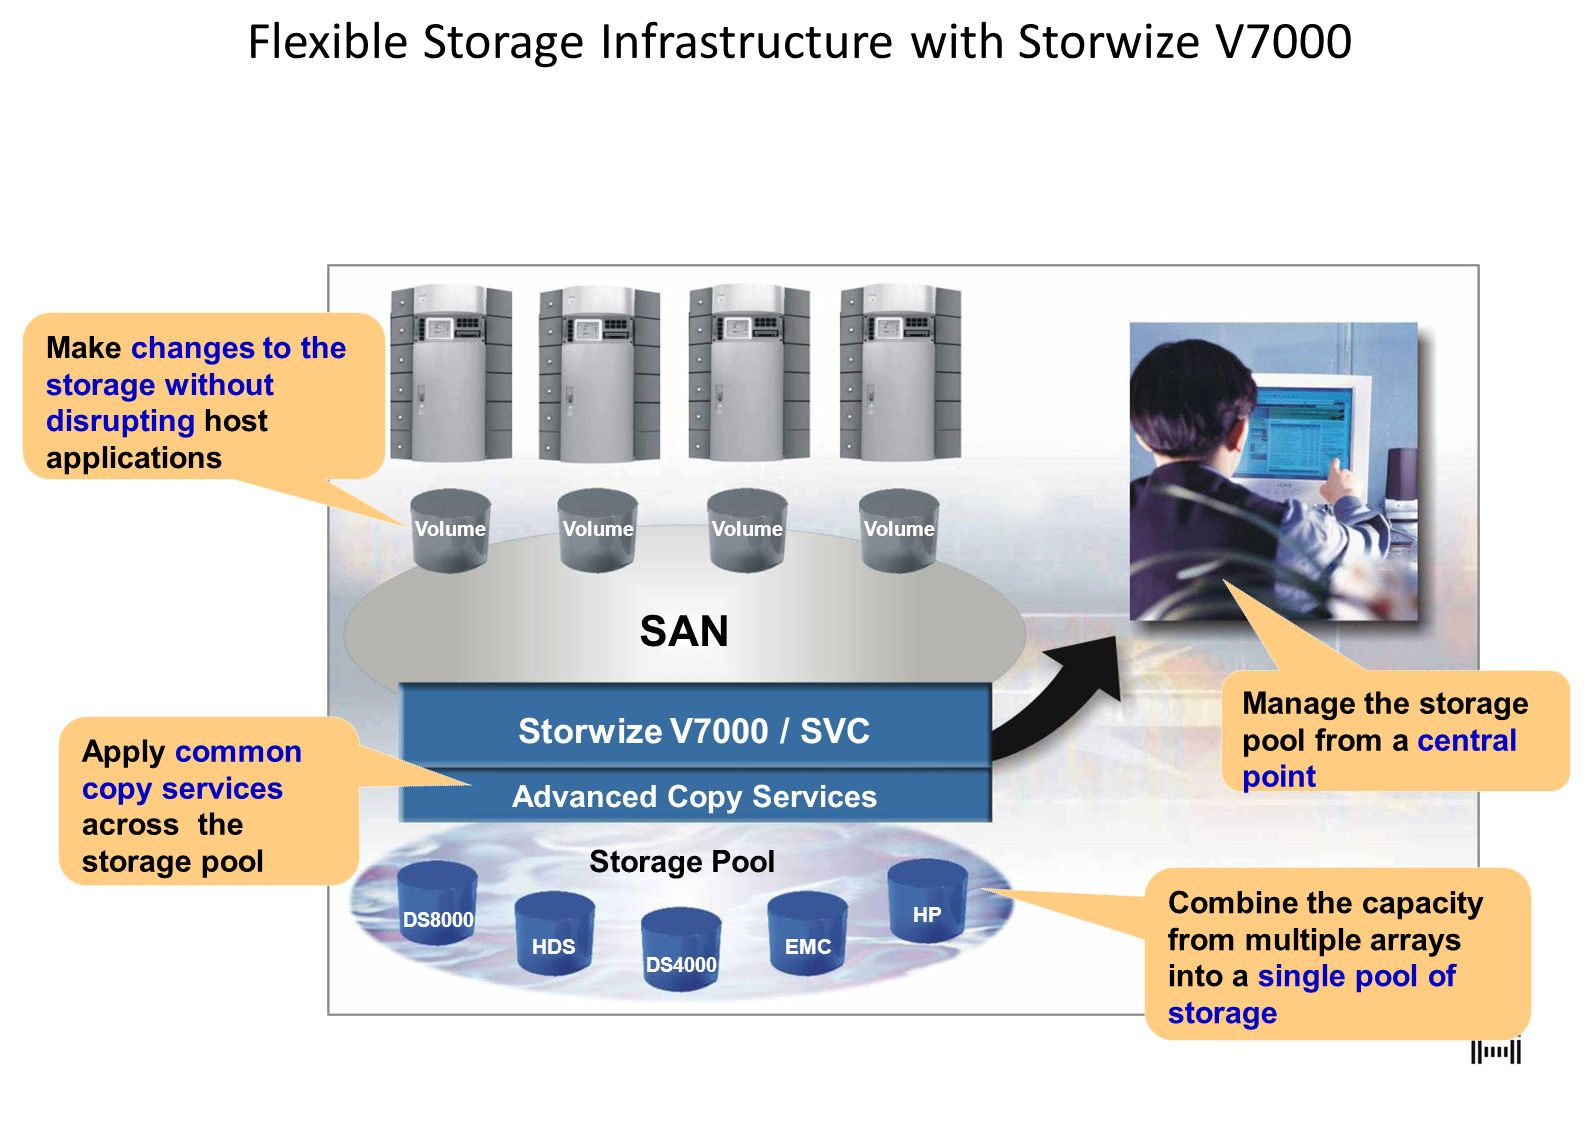 Flexible Storage Infrastructure with Storwize V7000